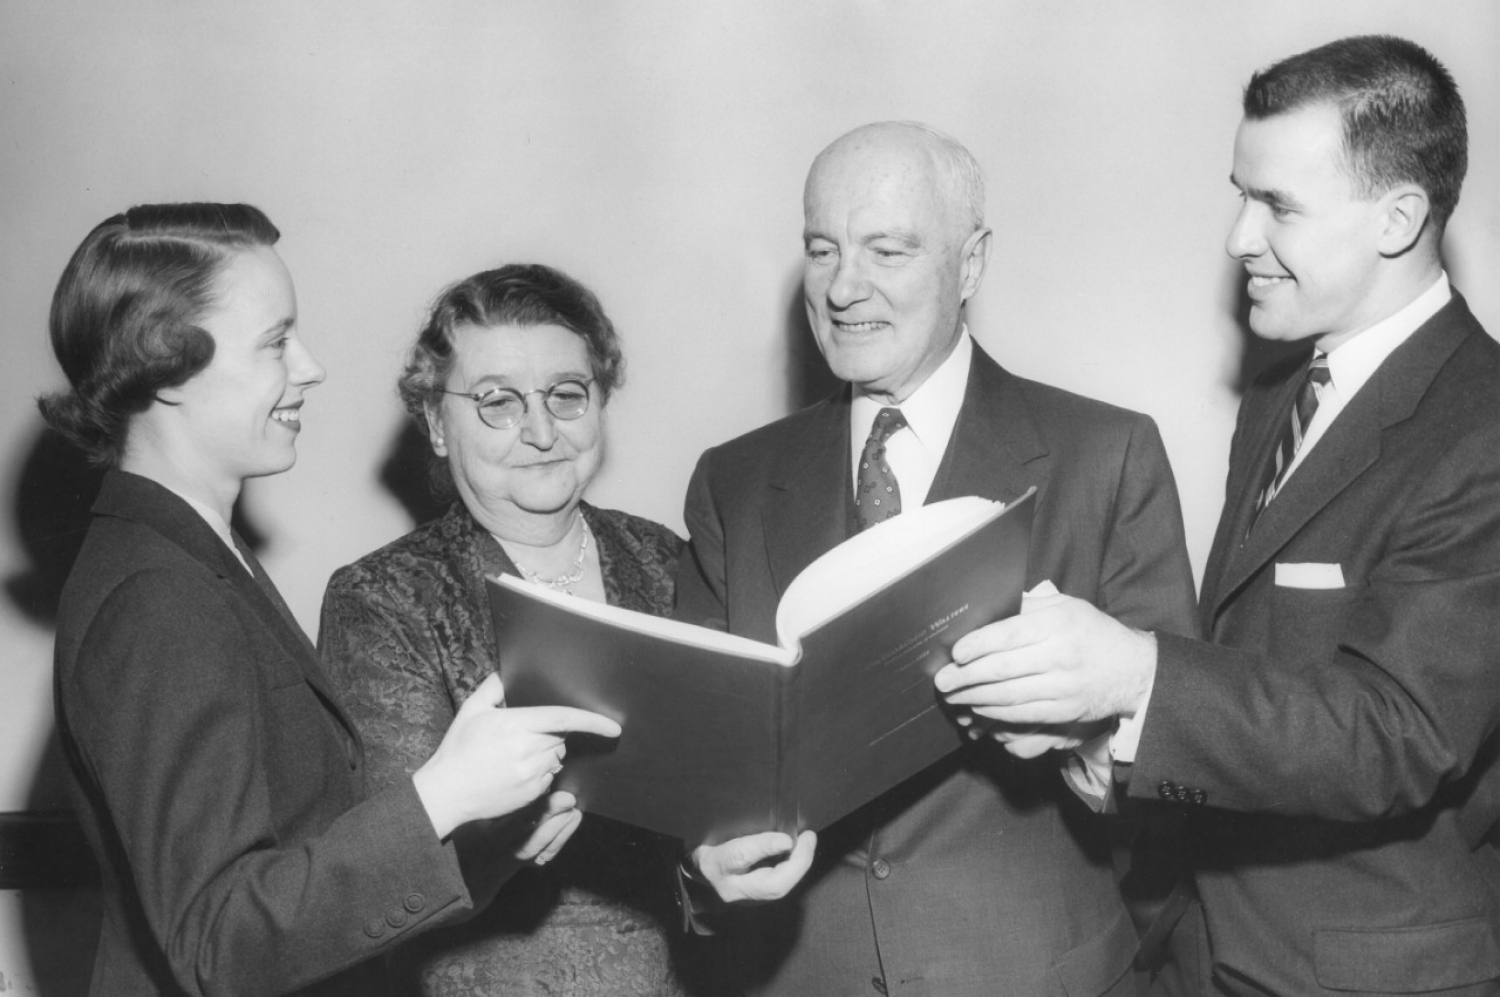 From the left: Shirley Parsons, Mrs. Raymond Walters, Dr. Raymond Walters, Otto Budig. The Walters are presented with a signature book at Raymond Walters' student-sponsored retirement dinner in 1955.